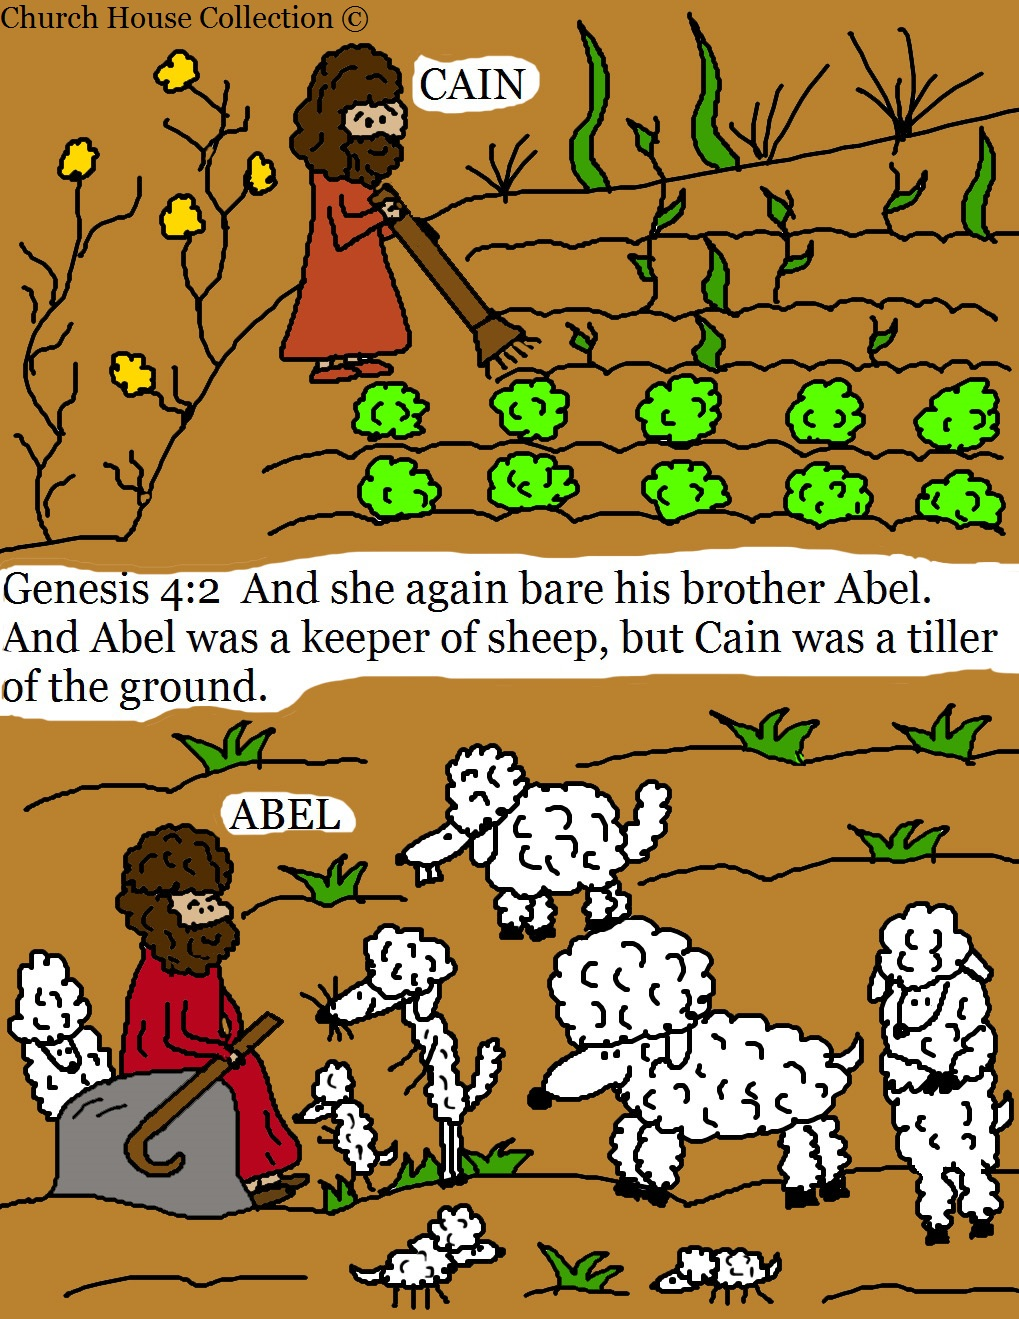 an analysis of the bibles story of cain and abel Bible doctrines: bible  lessons from the ancient story of cain and abel  cain killing abel was because he wanted to be accepted as righteous by his.